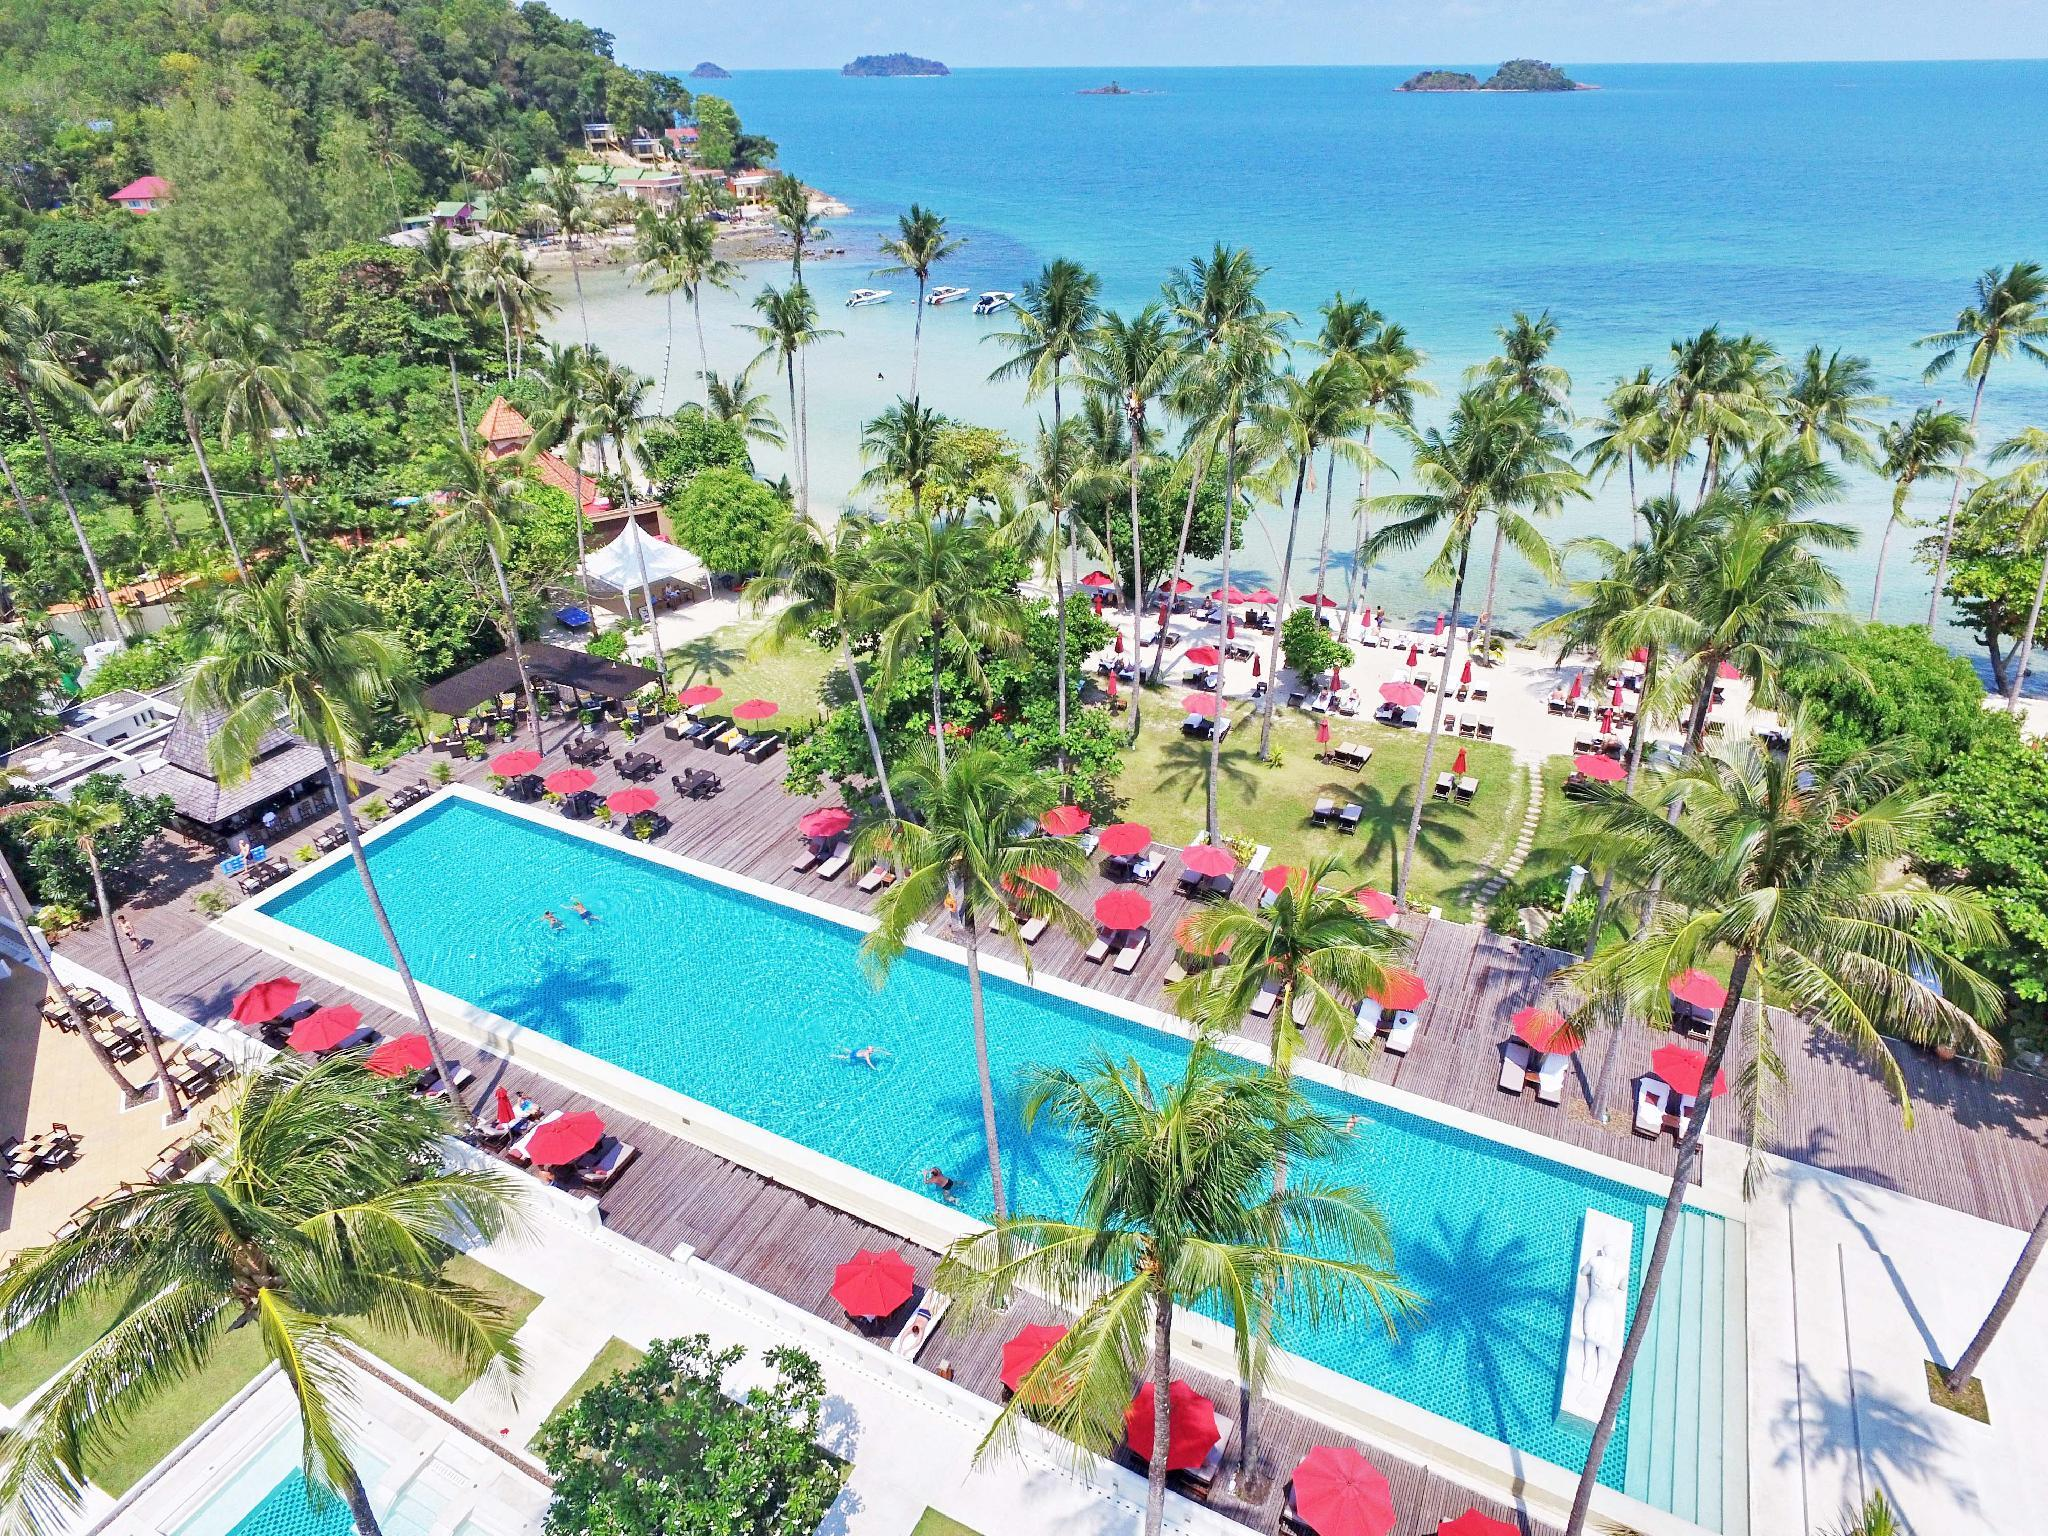 Best hotels in Koh Chang: review, rating, description and reviews of tourists 73